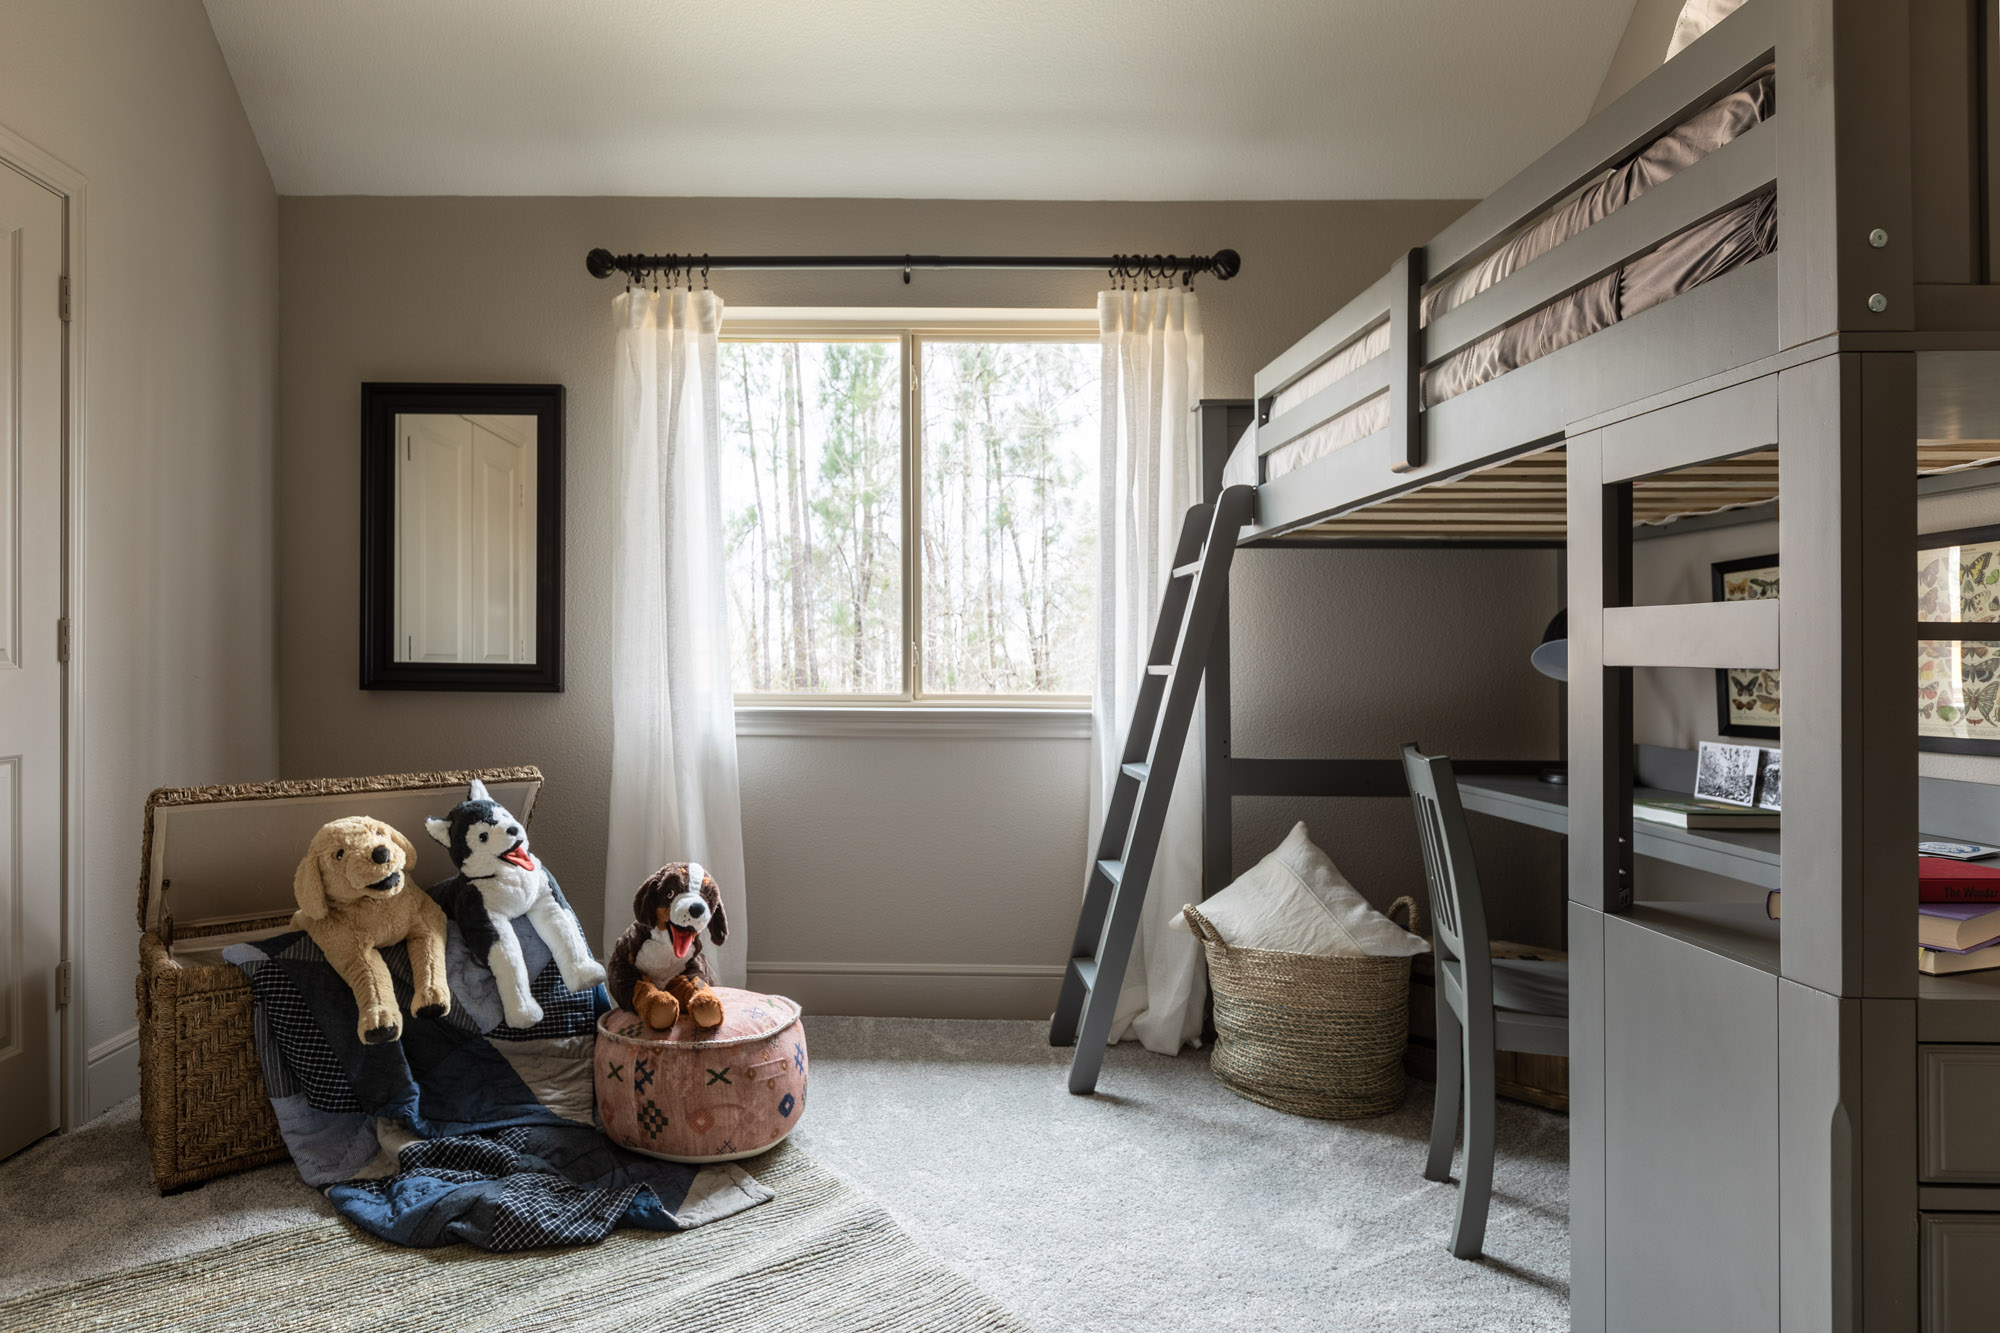 Harper's Preserve child's bedroom with bed elevated over desk and plush dog toys